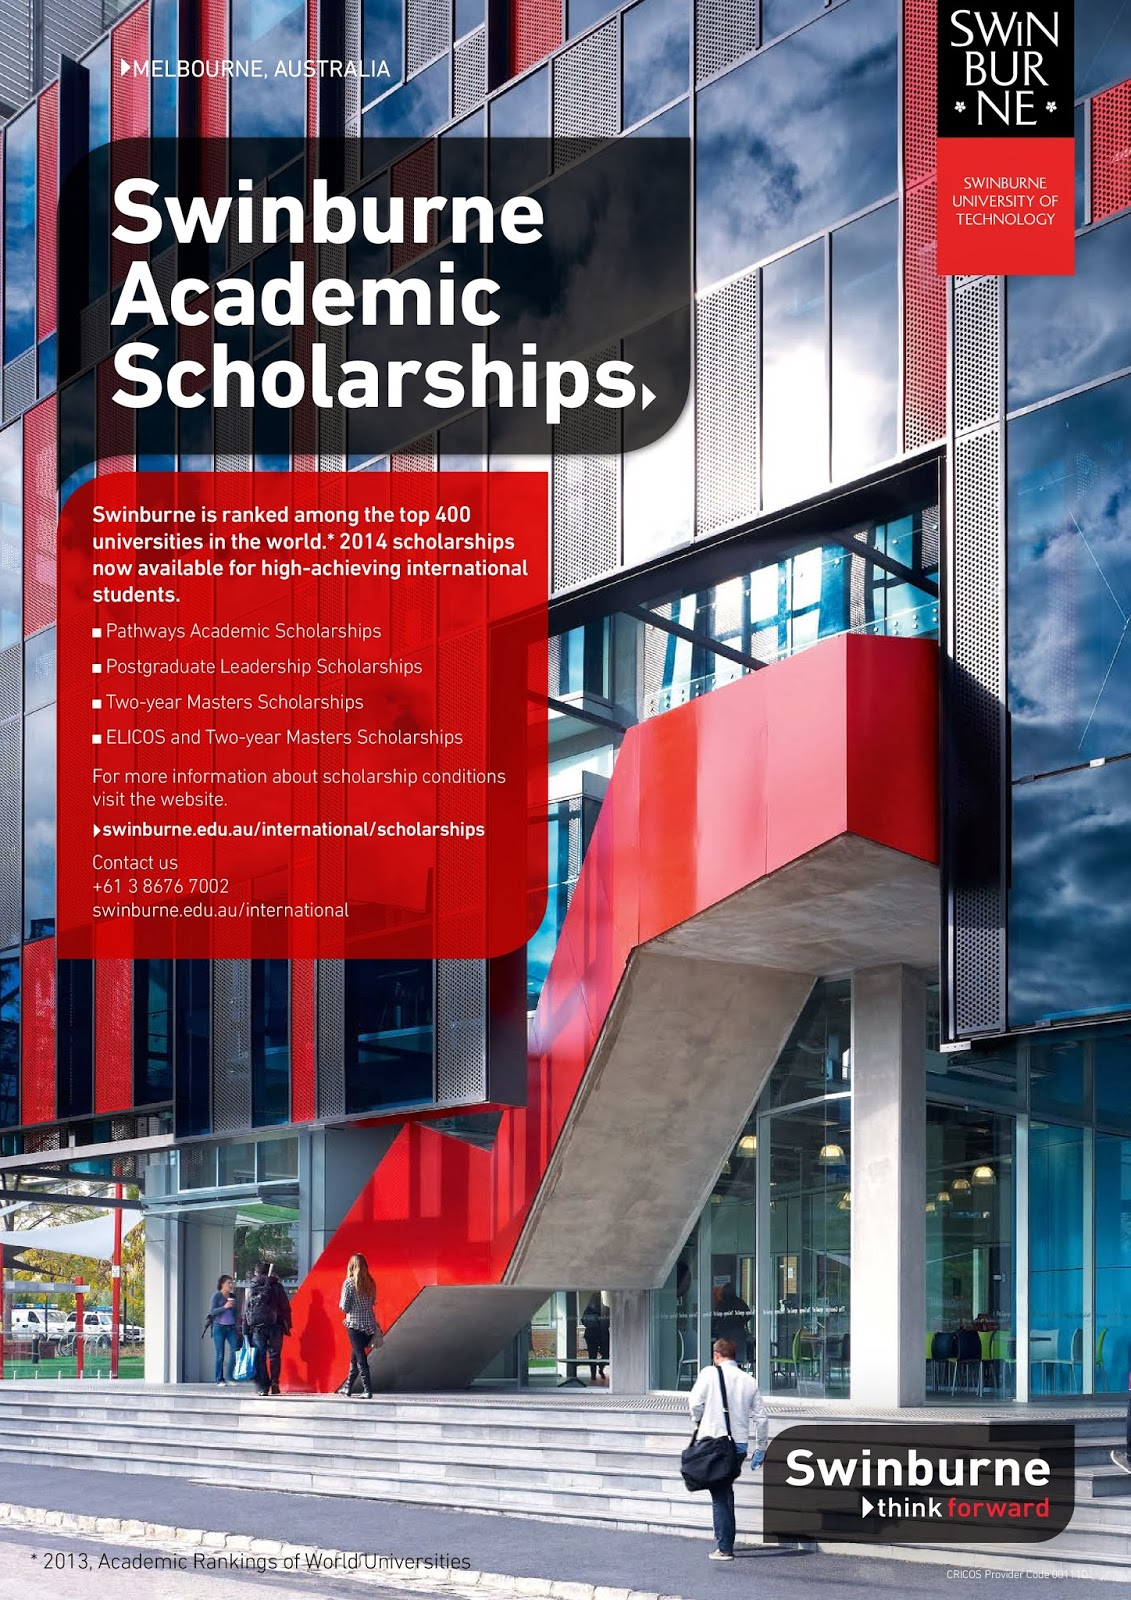 swinburne postgraduate coursework scholarships The swinburne postgraduate coursework scholarships are awarded on academic merit and are available to selected students who apply for a packaged elicos and masters program from overseas.